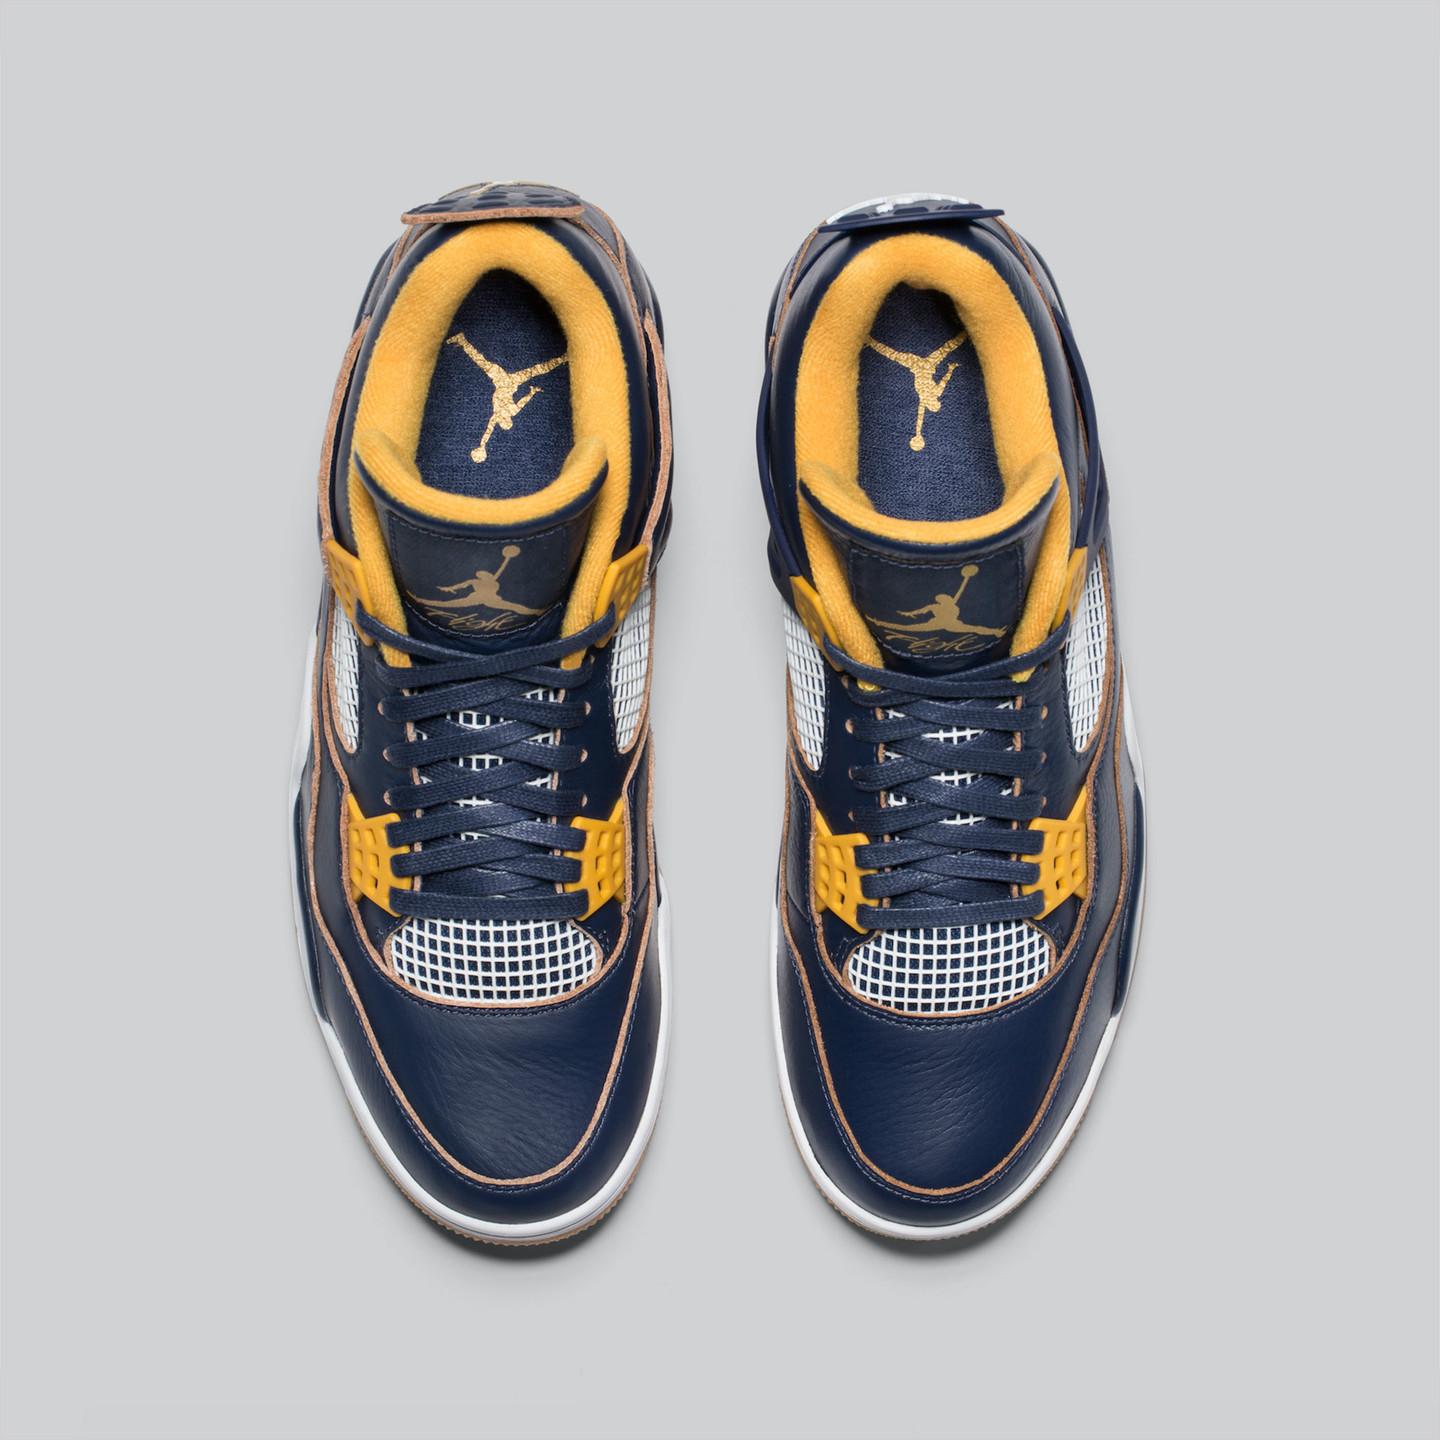 Jordan Air Jordan 4 Retro 'Dunk From Above' Midnight Navy / Golden Yellow / White 308497-425-44.5